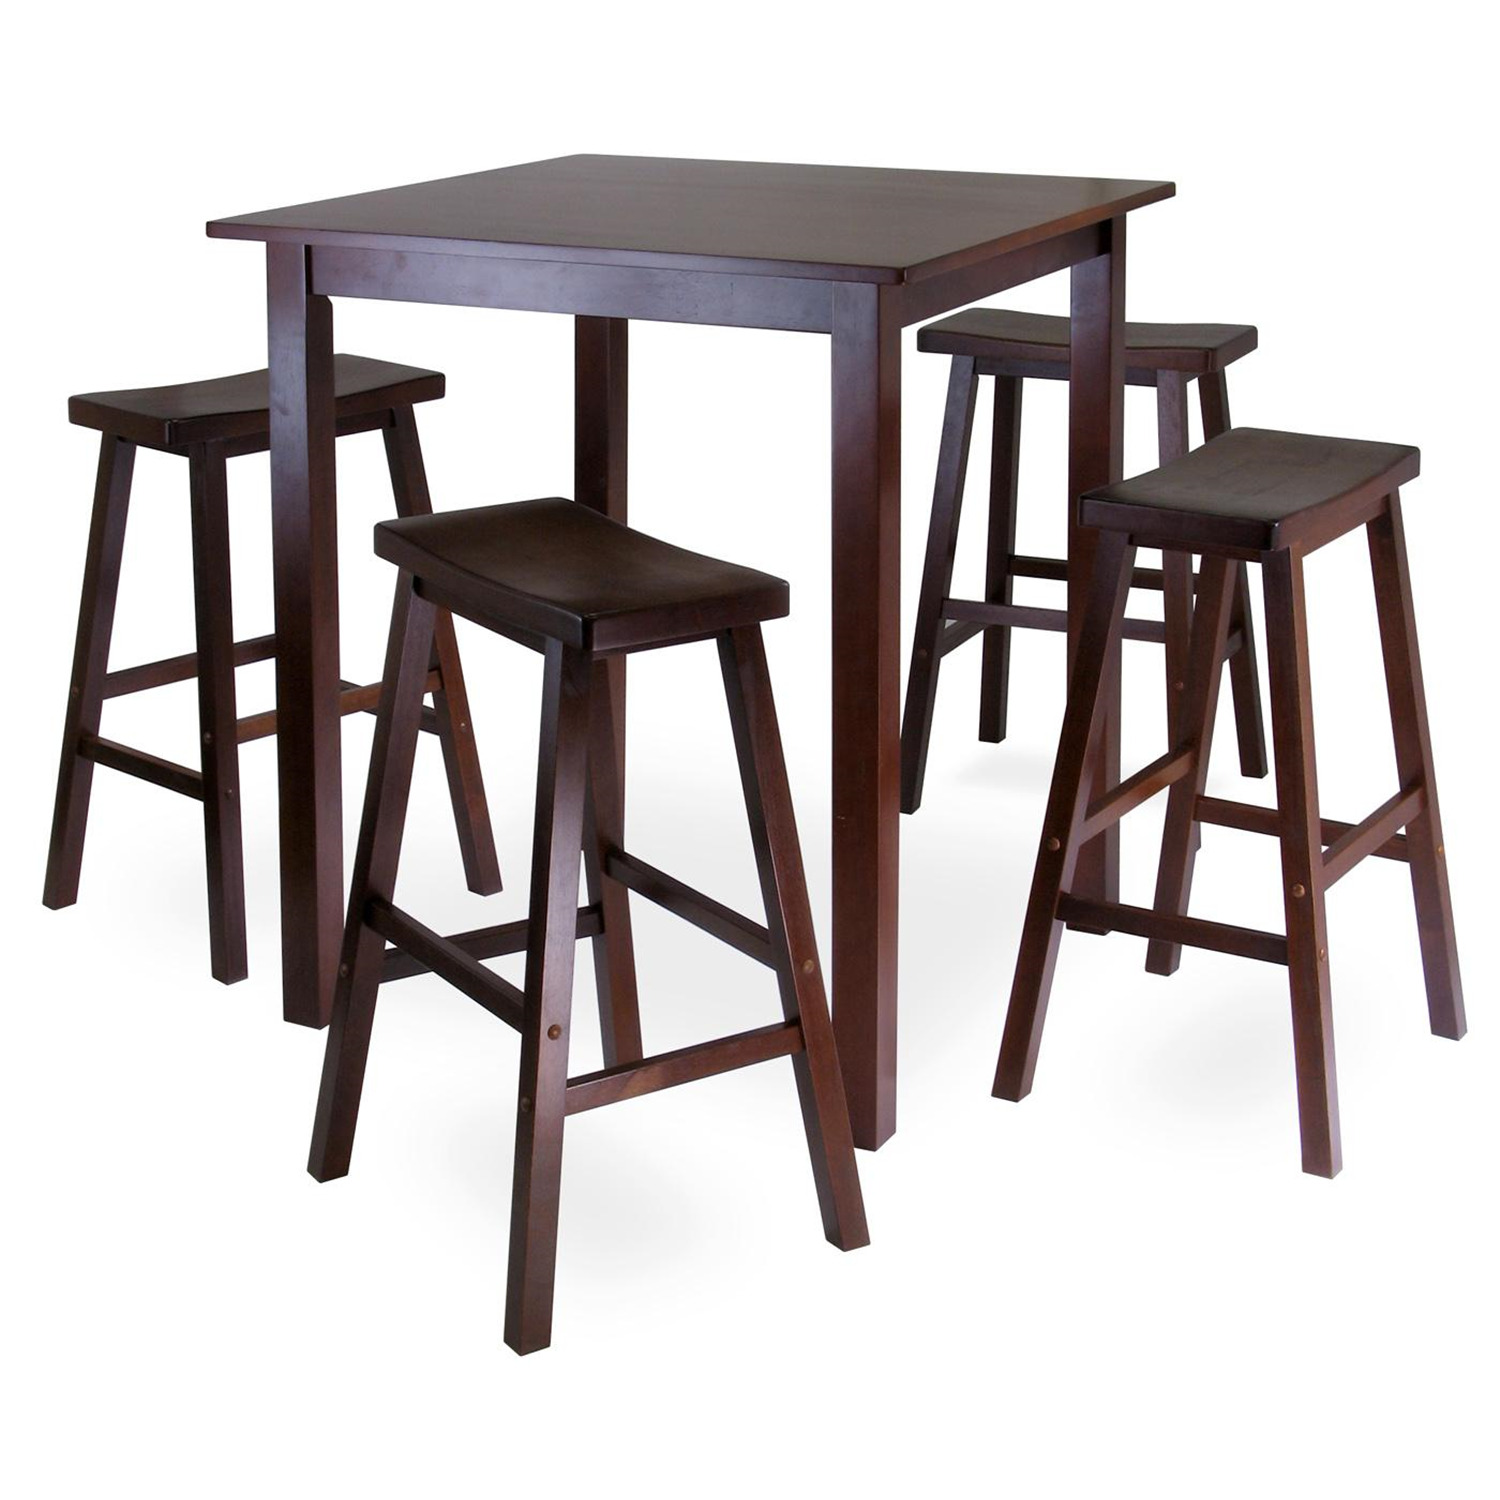 parkland 5pc square high pub table set with 4 saddle seat stools ojcommerce. Black Bedroom Furniture Sets. Home Design Ideas